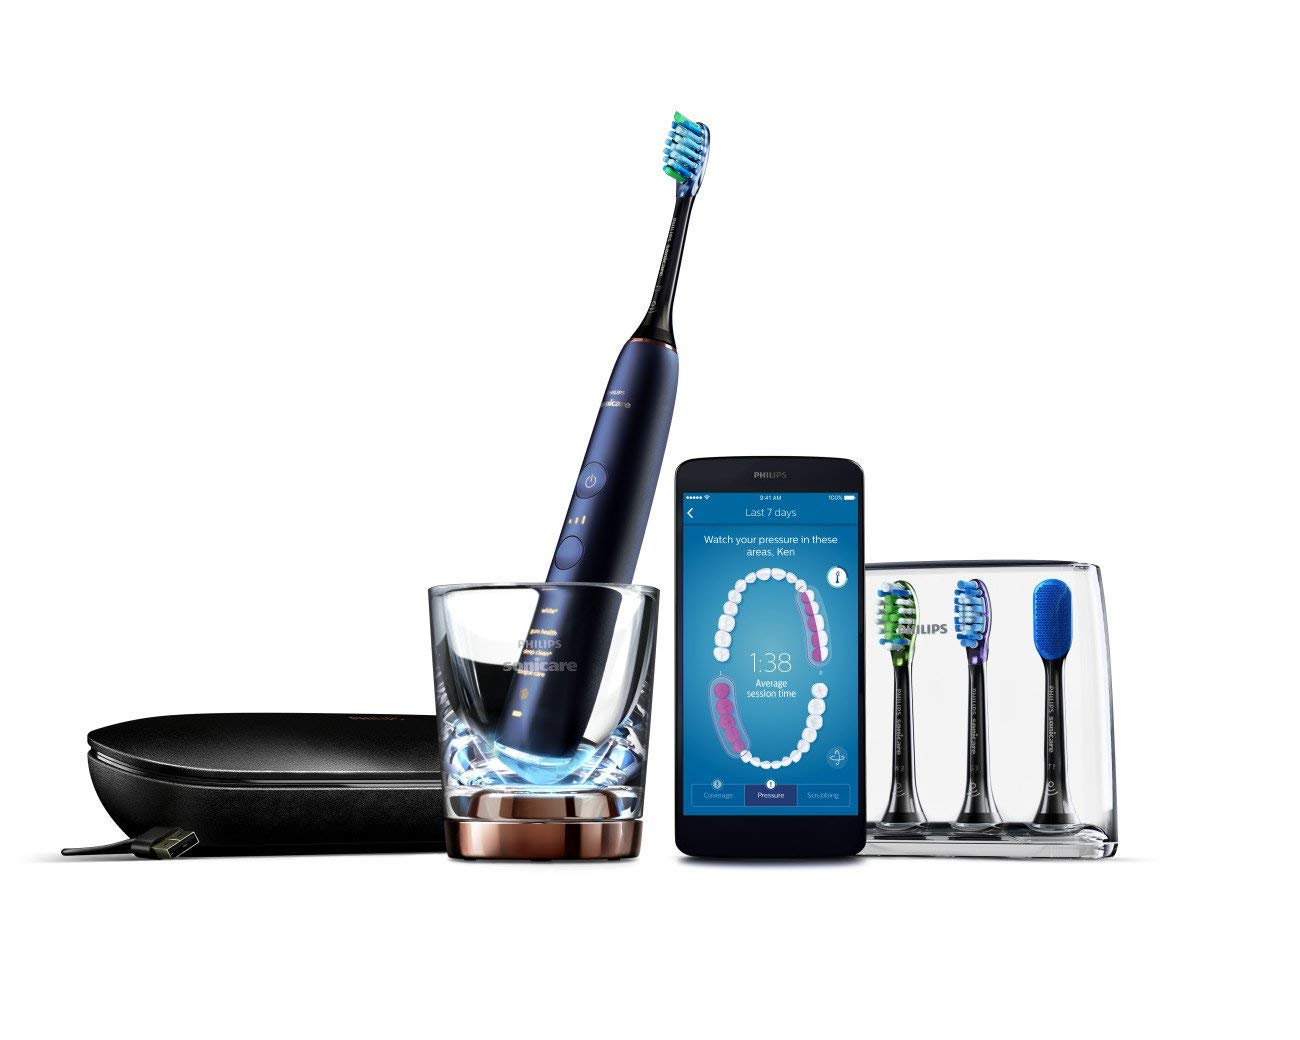 B07C799HF6 Philips Sonicare DiamondClean Smart 9750 Rechargeable Electric Toothbrush, Lunar Blue HX9954/56 61qlDNaRKML